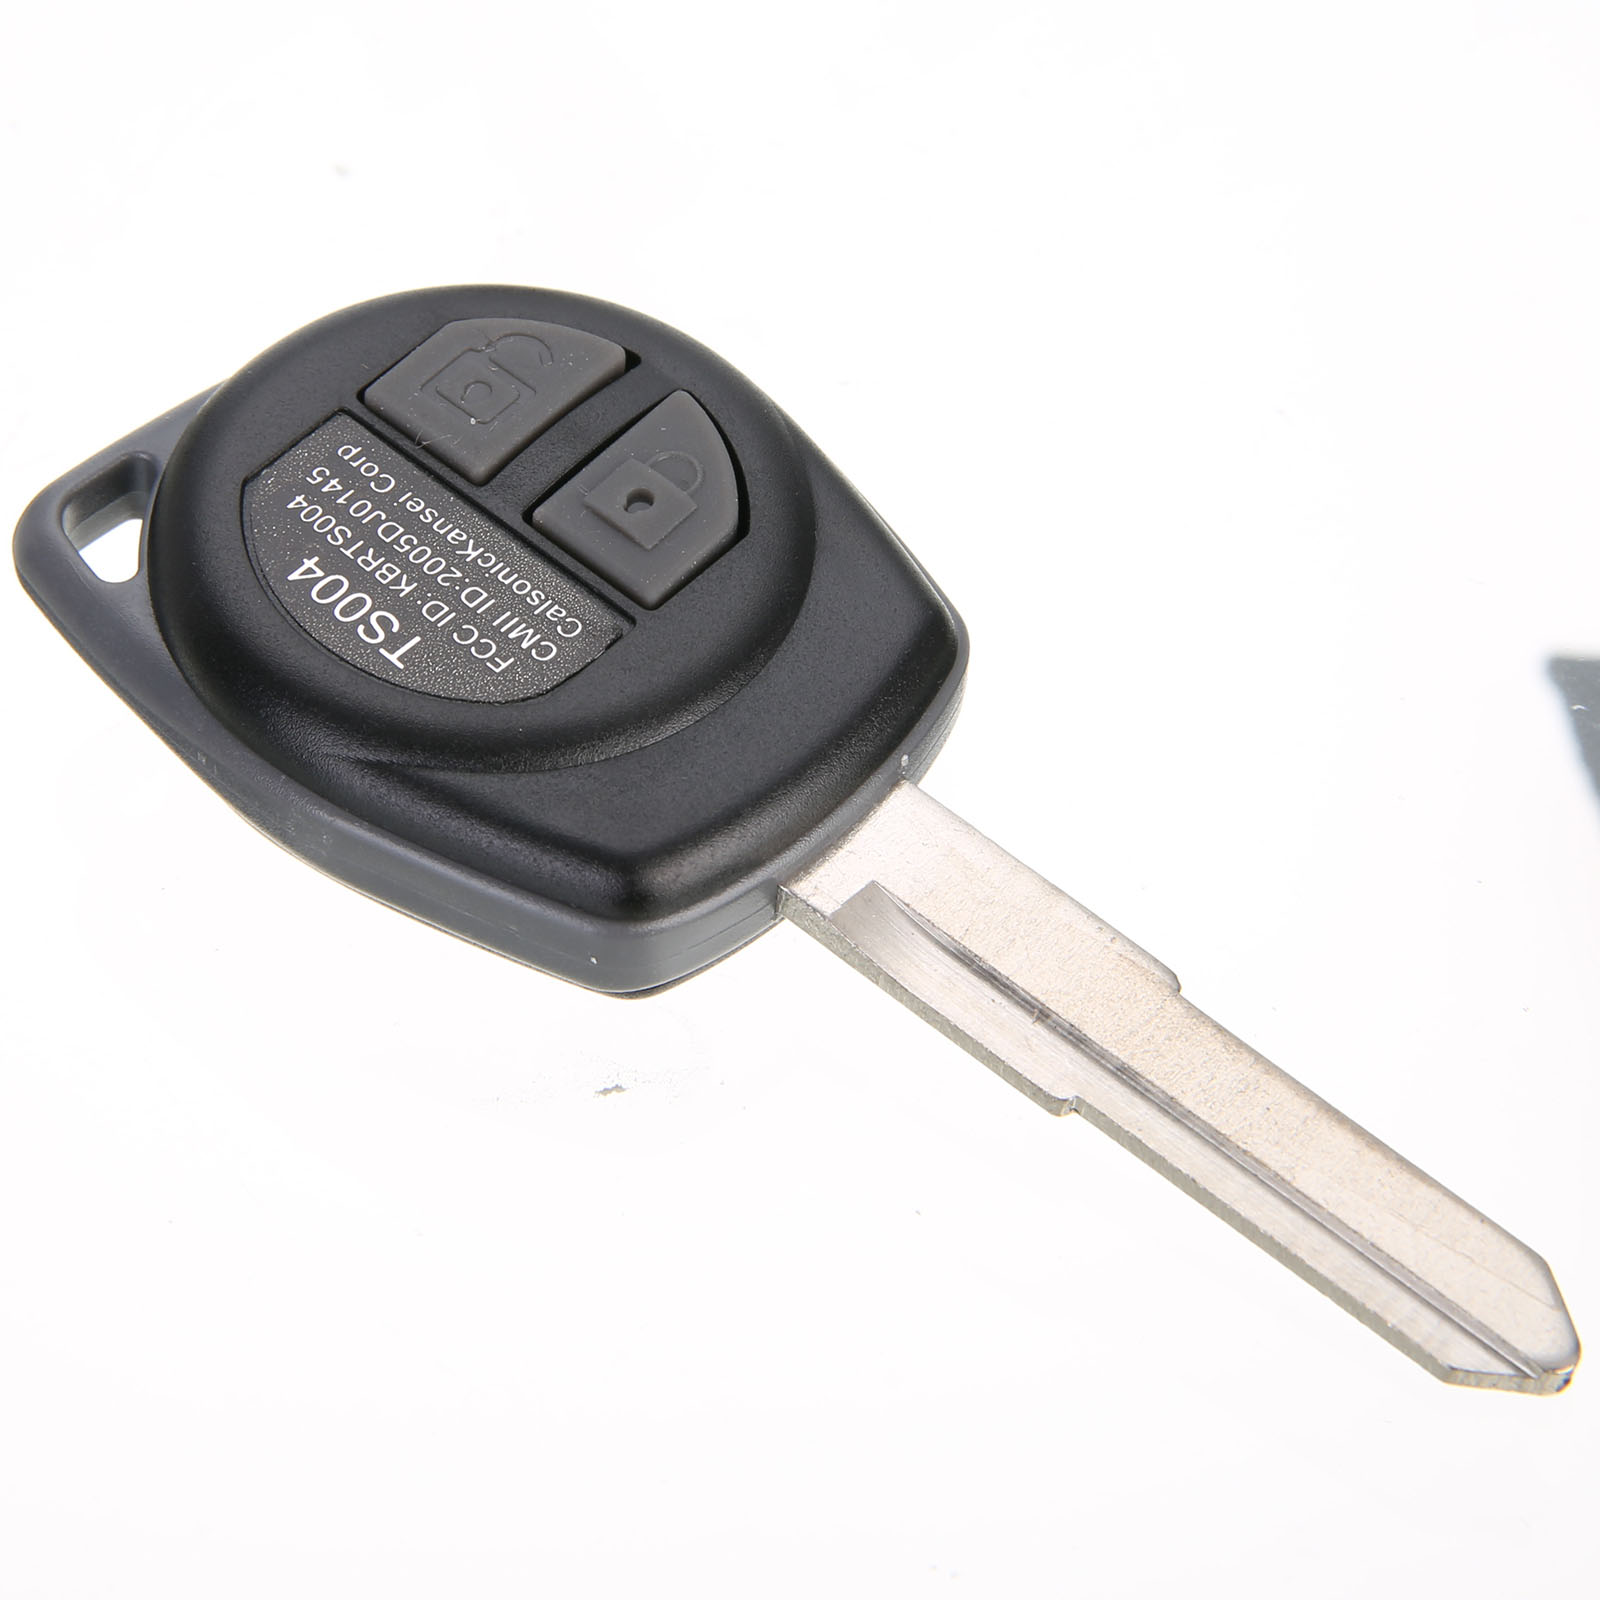 Mayitr New Arrivals 2 Buttons Remote Car Key Fob 433MHz ID46 Chip For Suzuki SX4 Swift 37145-55JU0